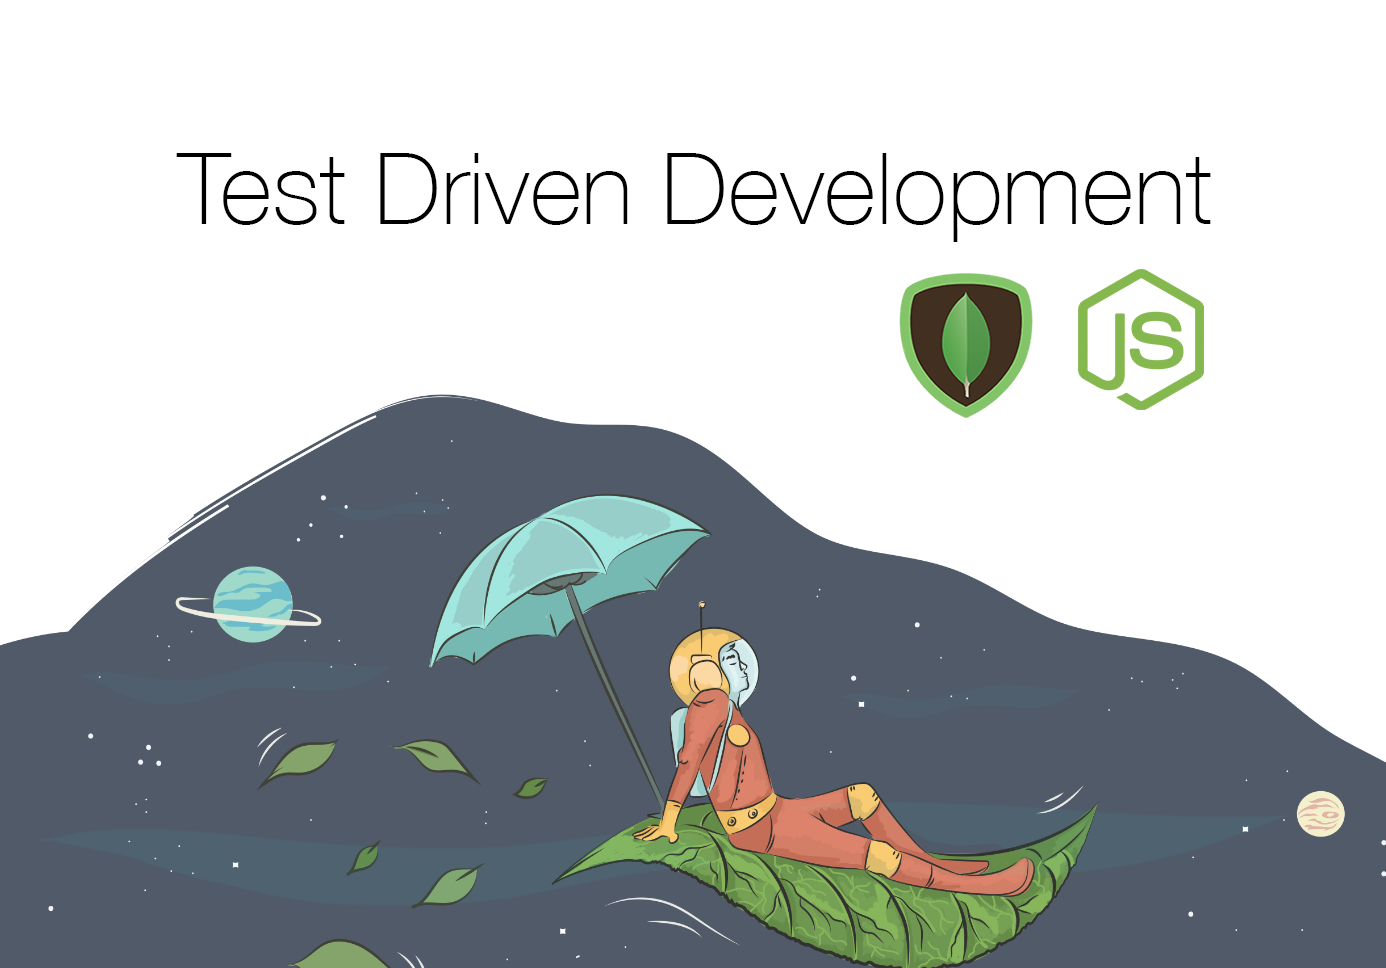 Into a Test-Driven Development with Nodejs, Mocha, and Chai